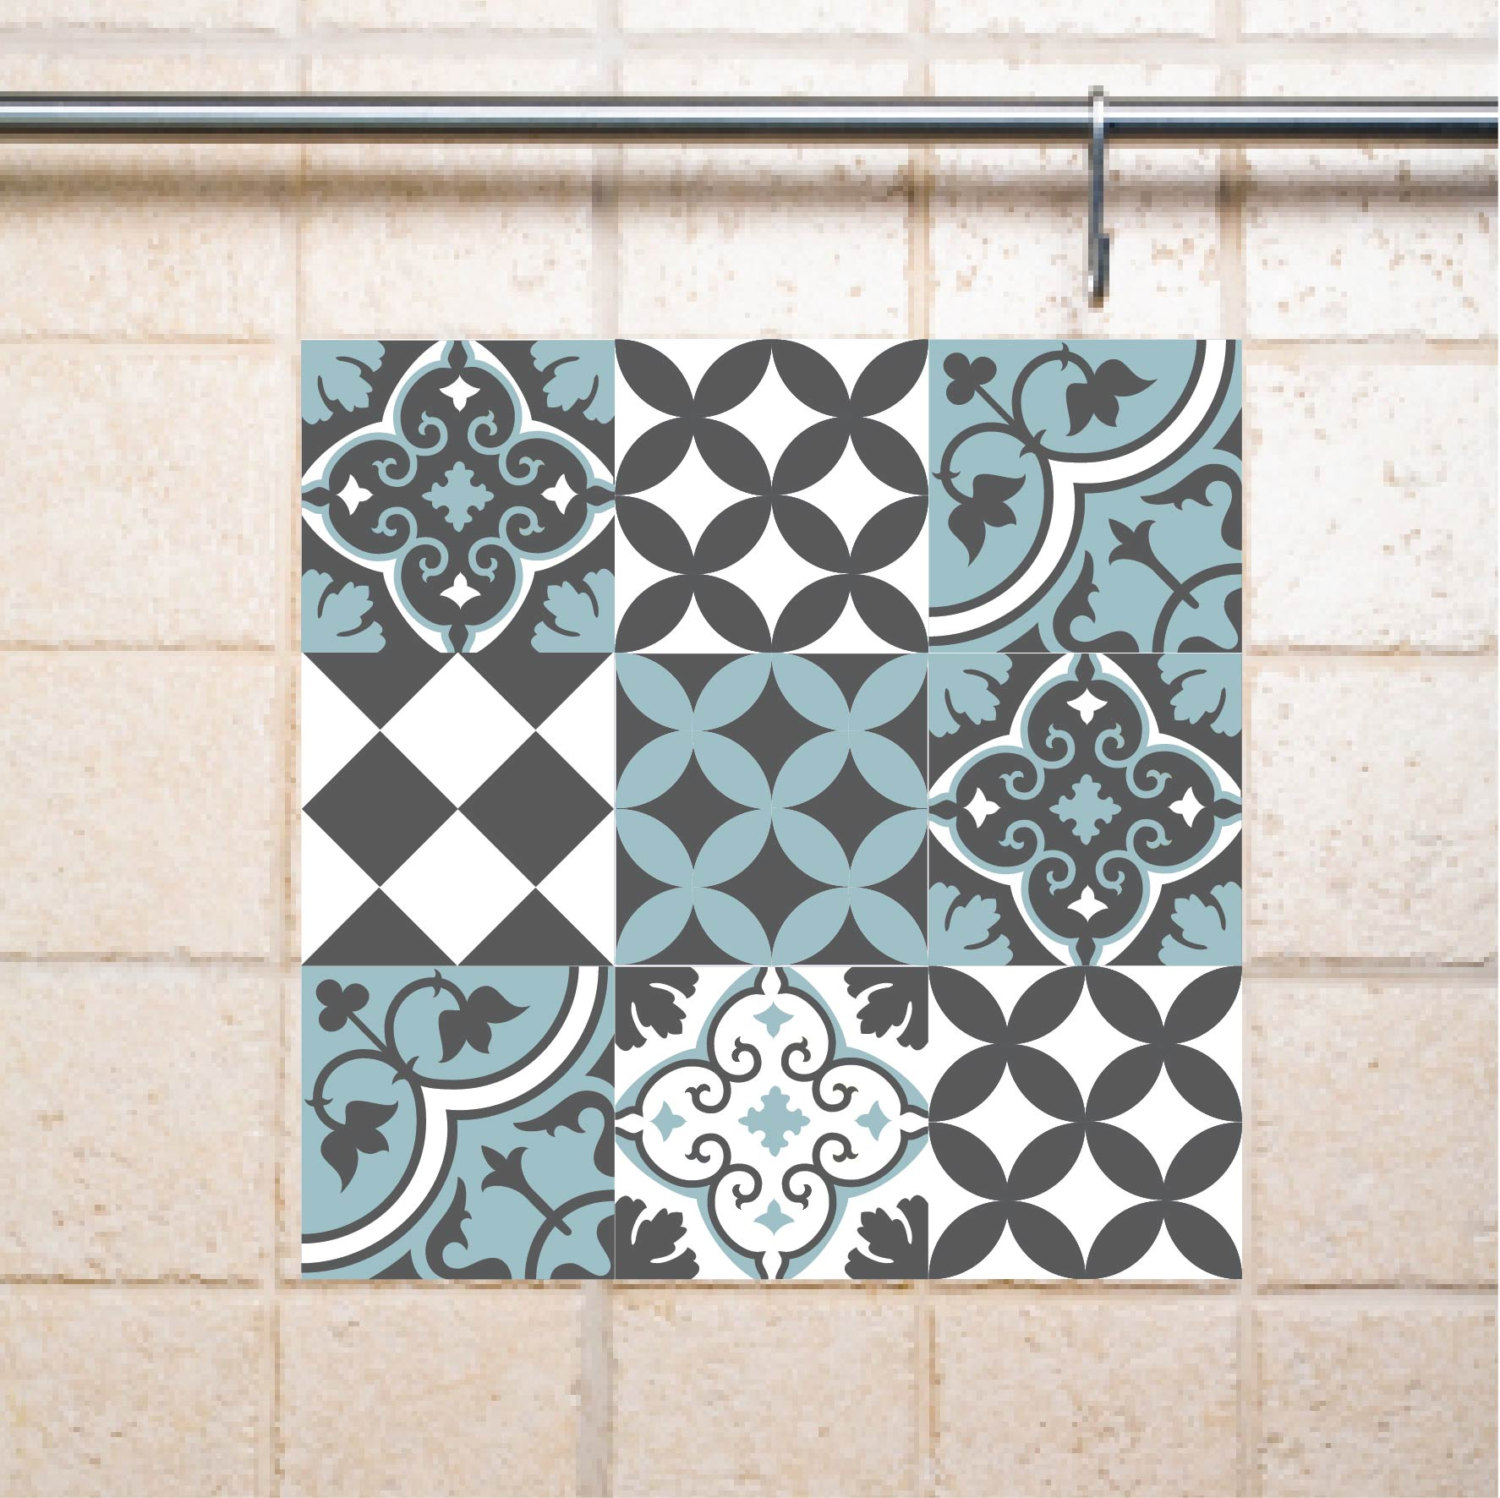 wall tile stickers – Vanill.co